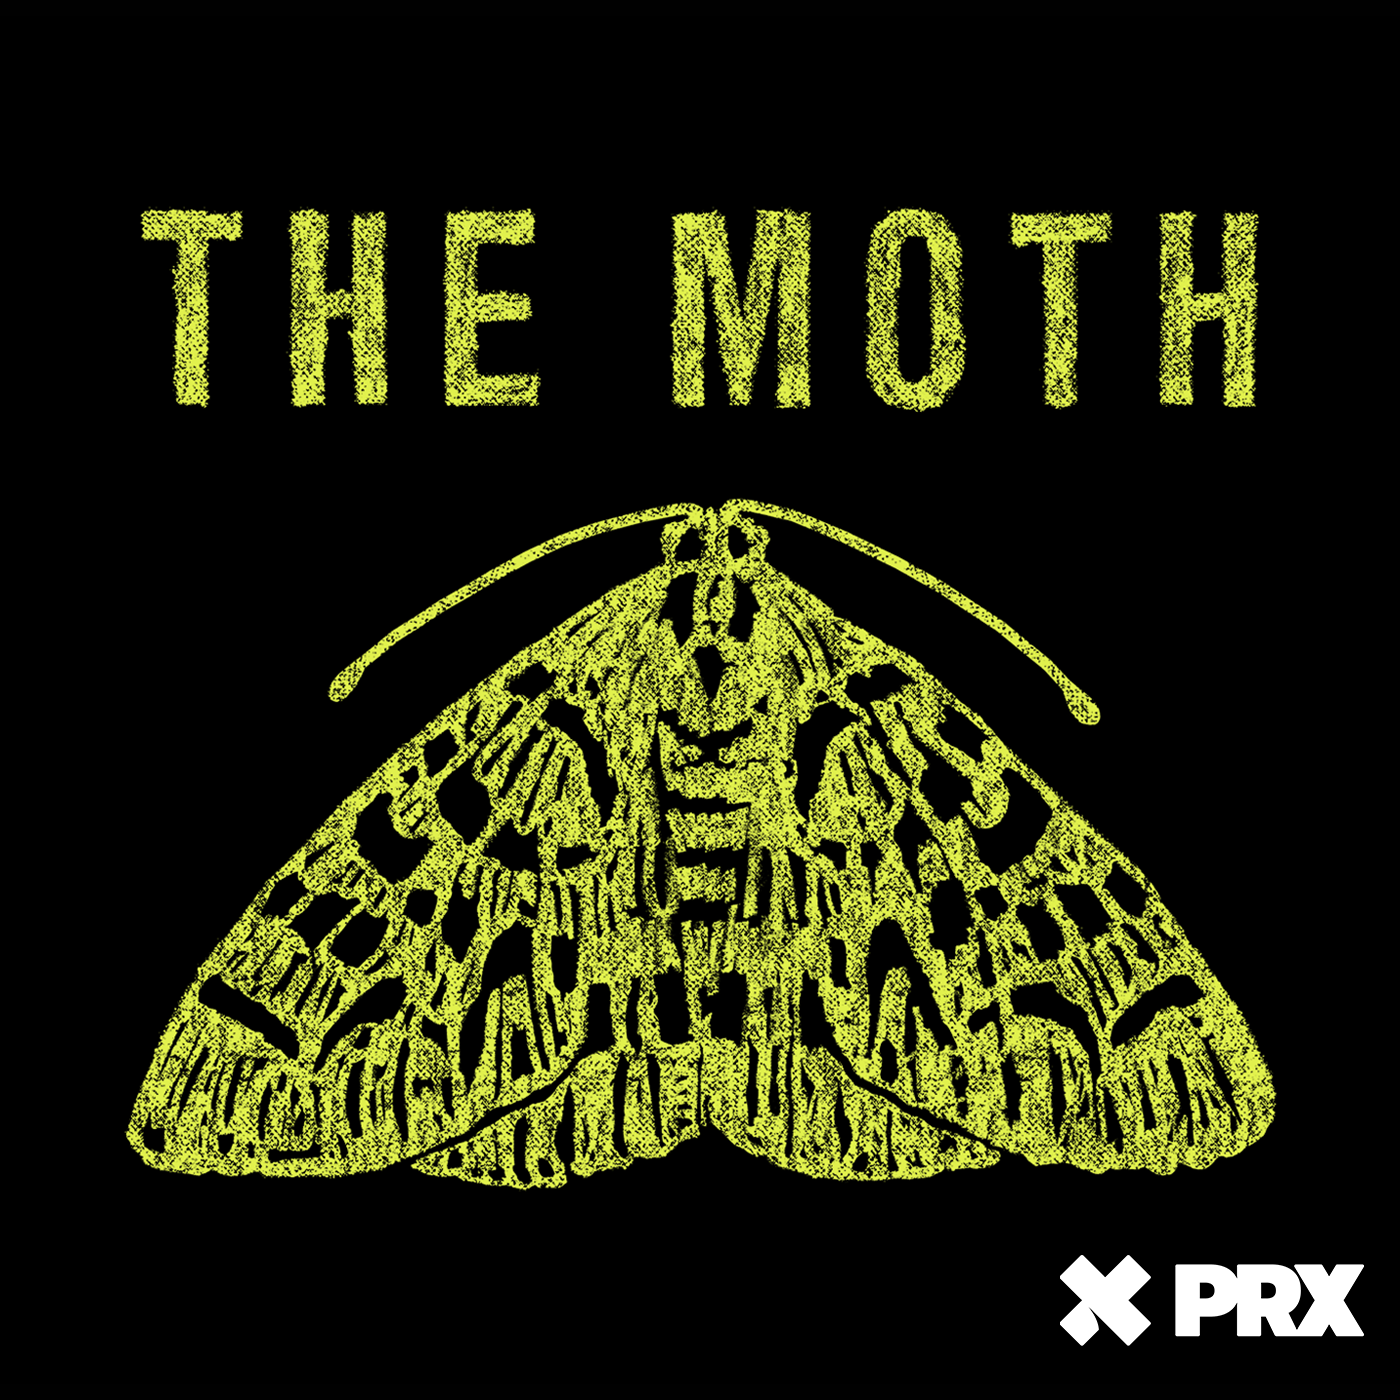 The Moth Radio Hour: To Thine Own Self Be True